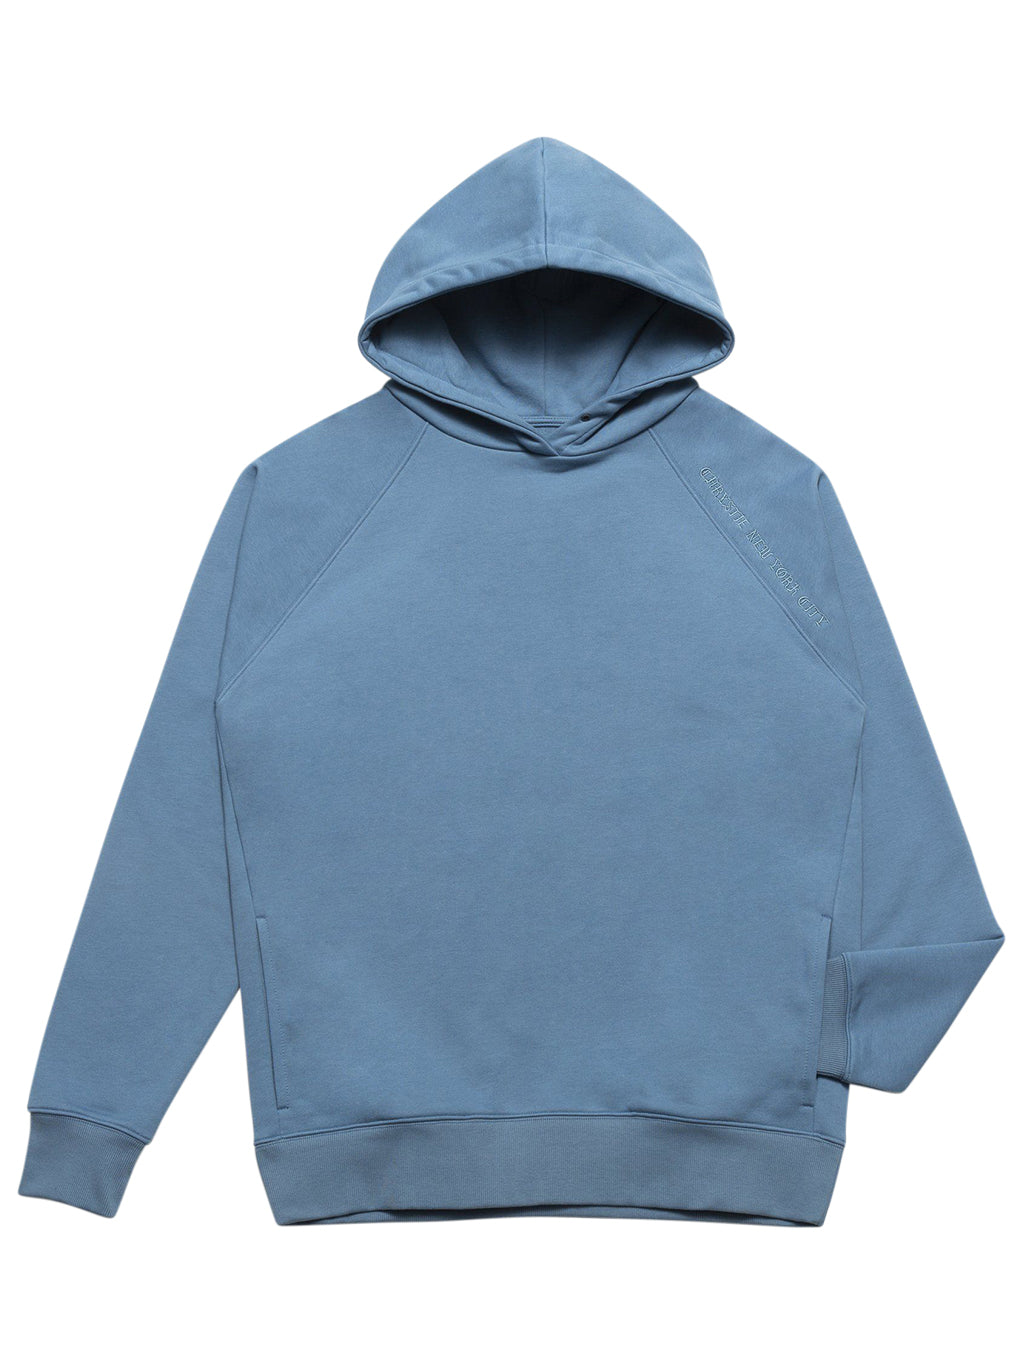 Bue Clean Cut Side Pockets Hoodie